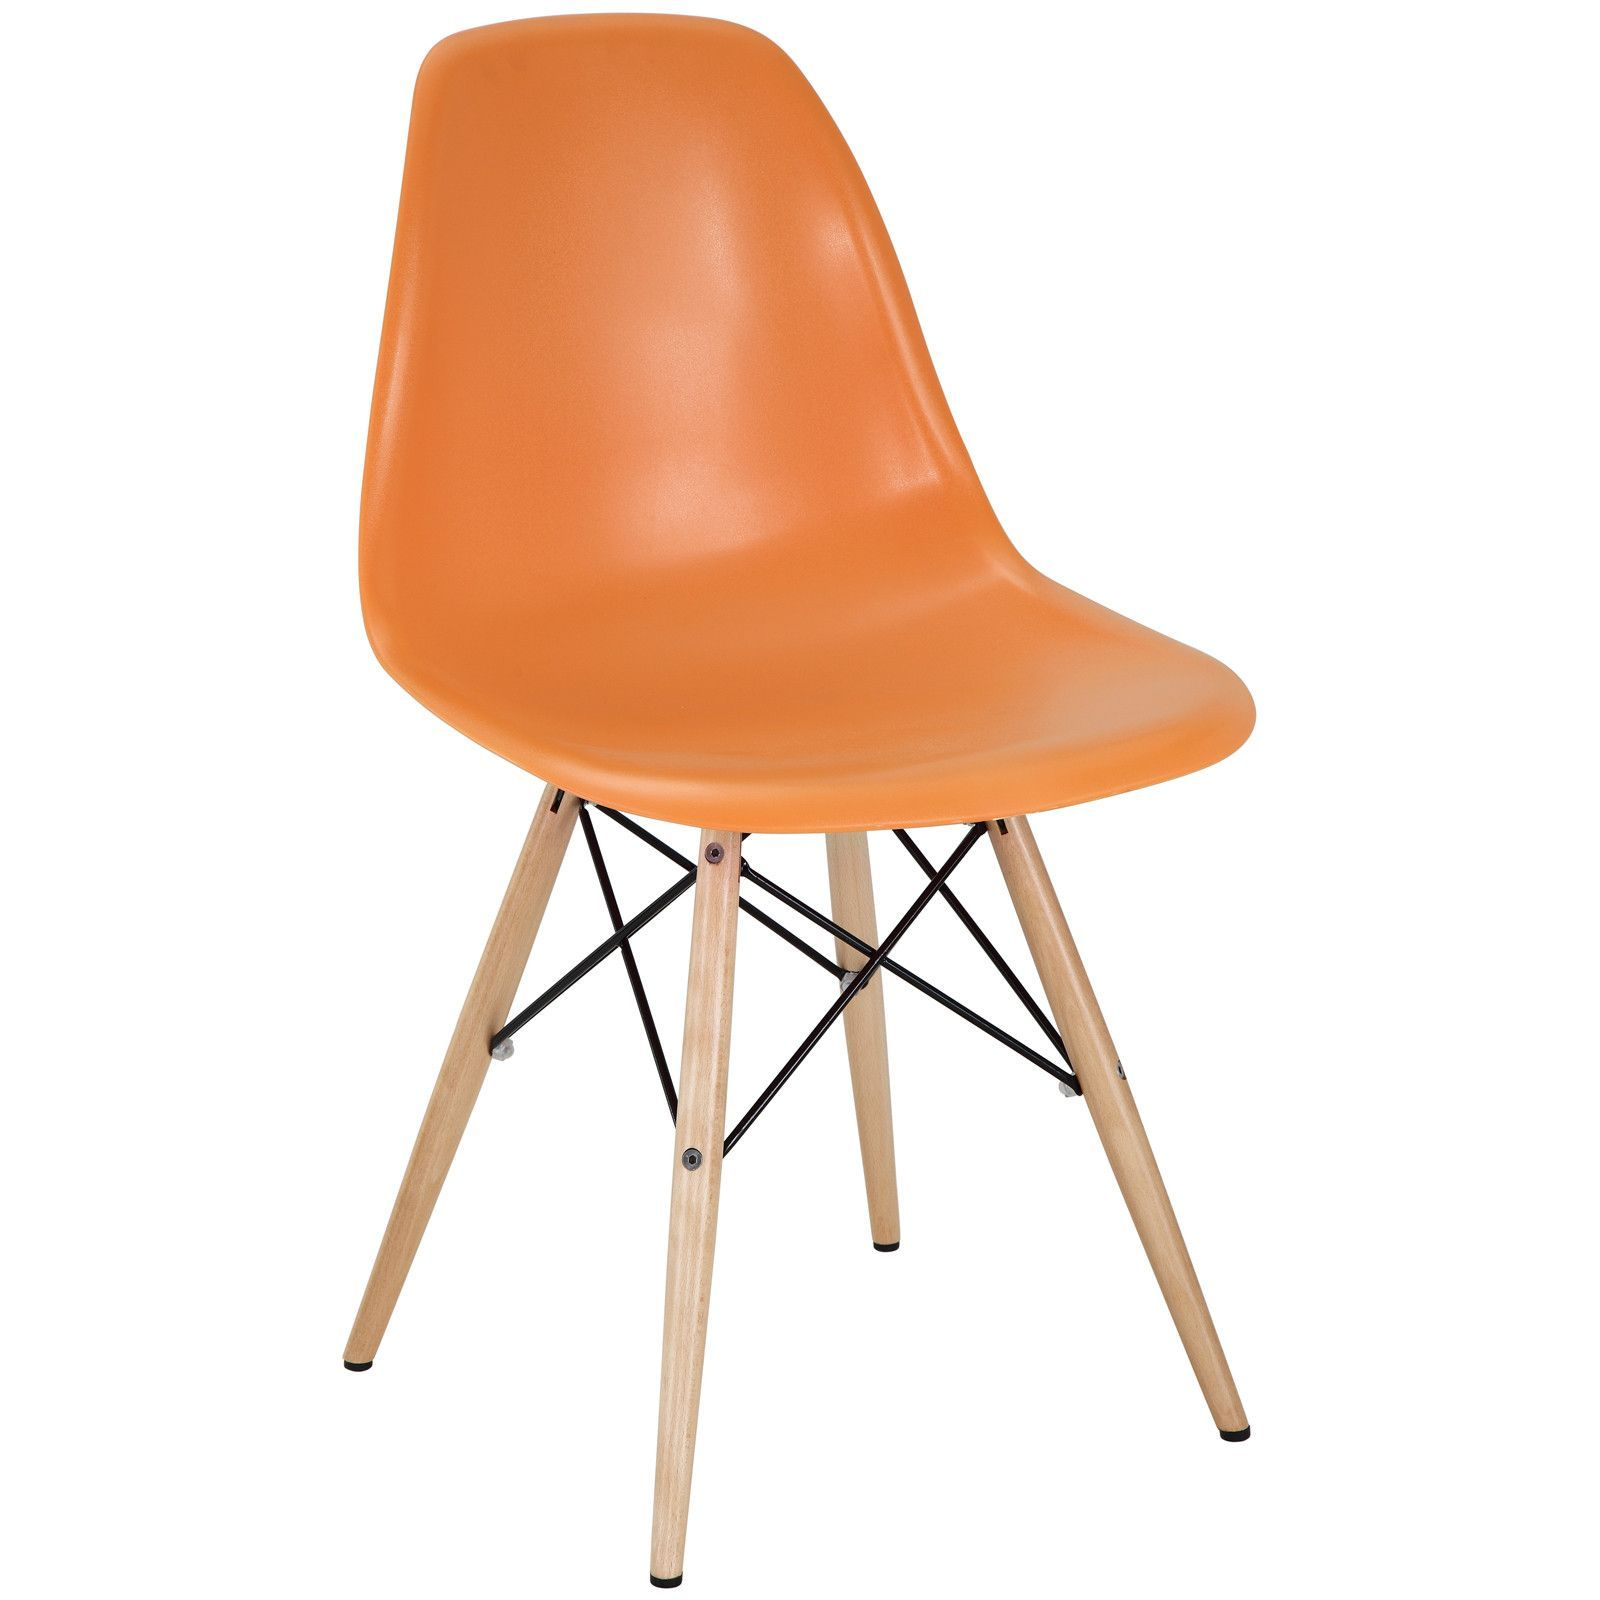 Cool Retro Furniture. Pyramid Dining Side Chair In Orange   Modern Chairs  Zopalo. Find